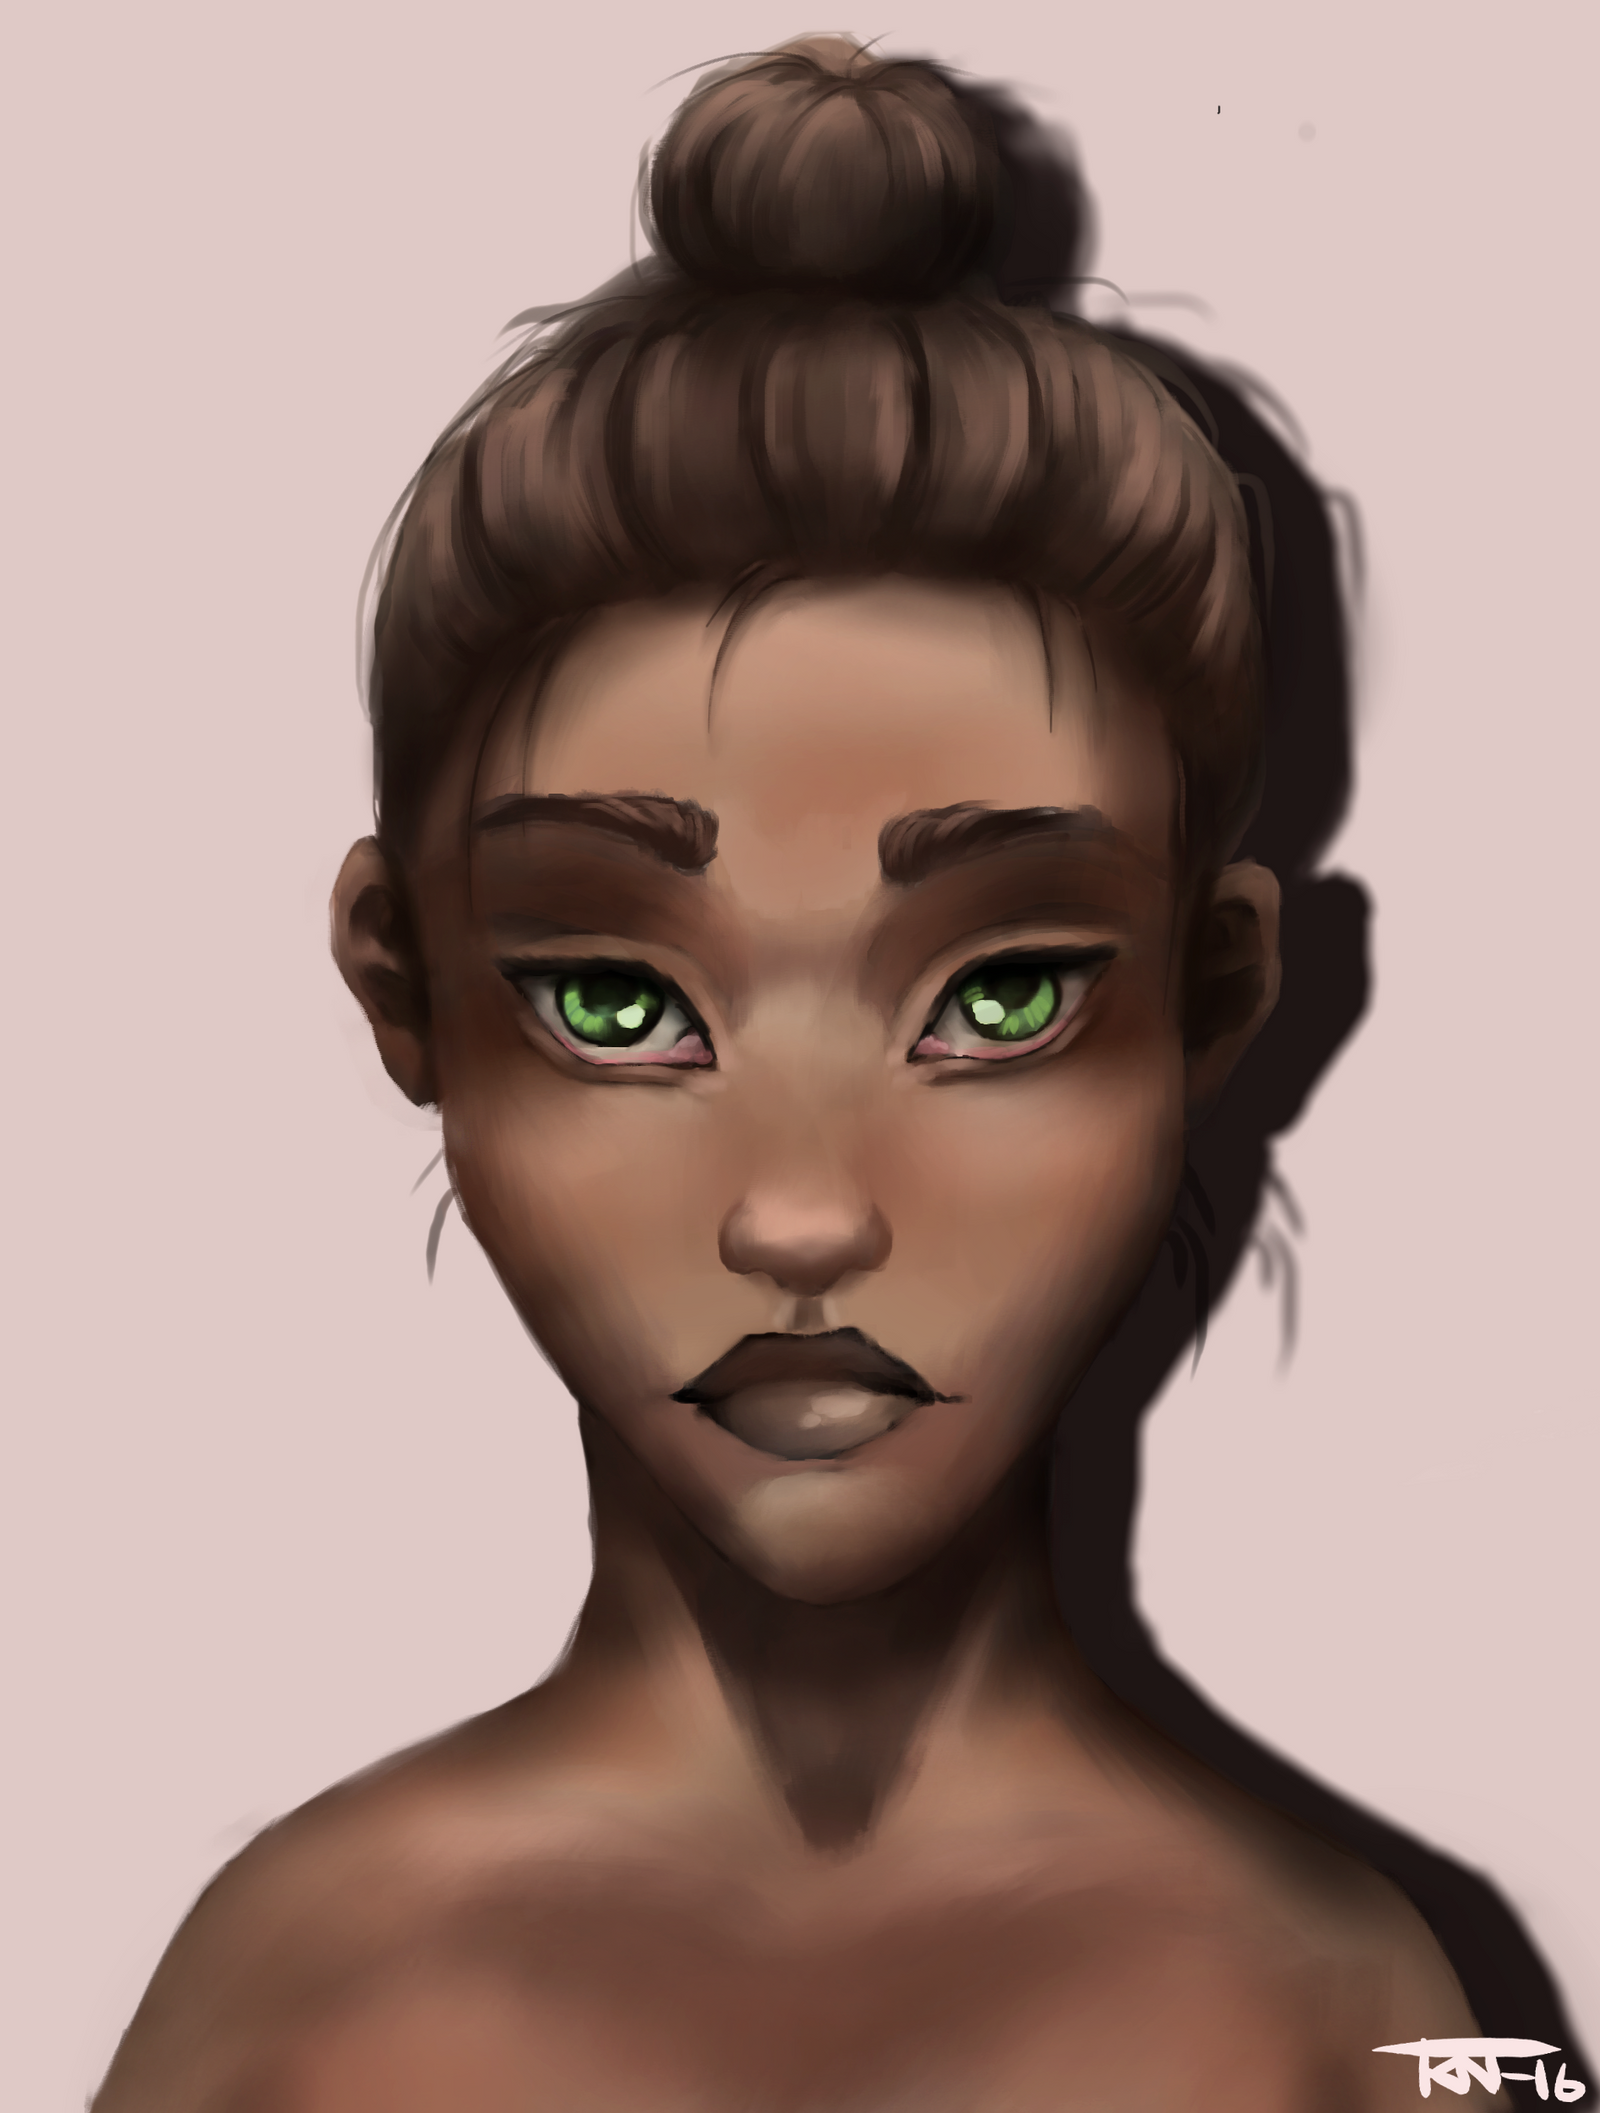 Face/skin practice by trinemusen1